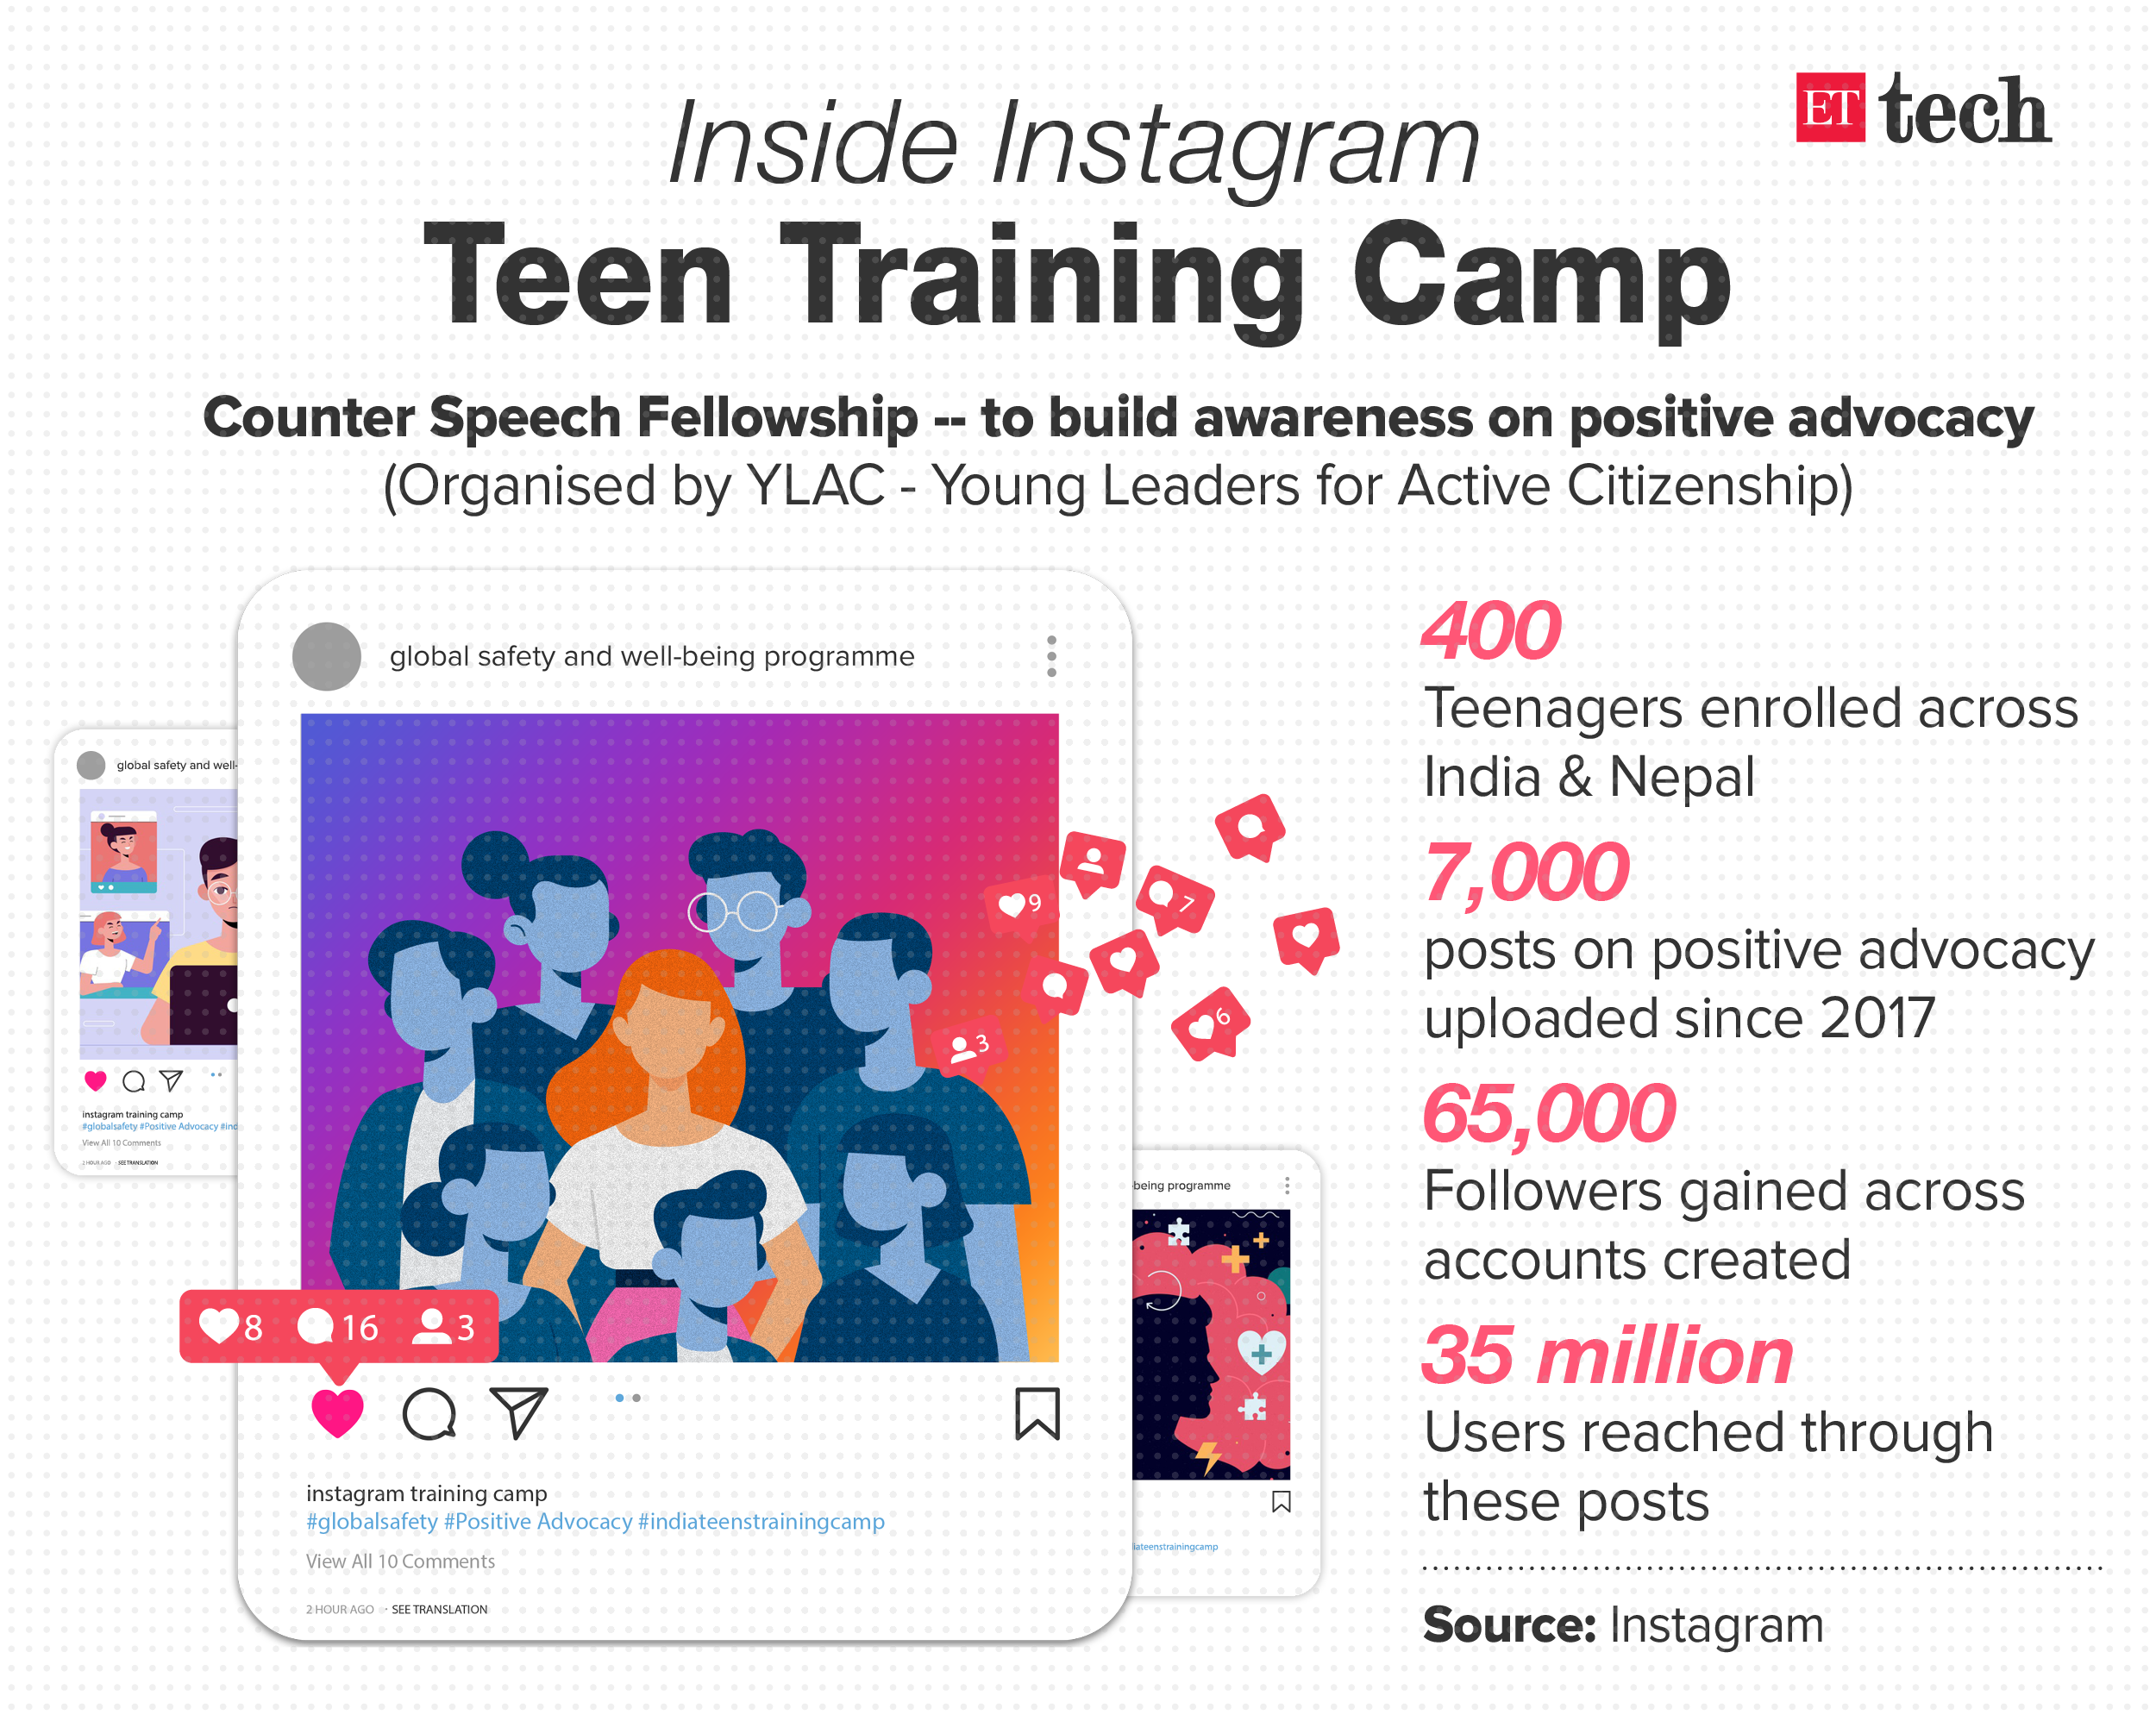 Inside Instagram's teen training camp for positive advocacy